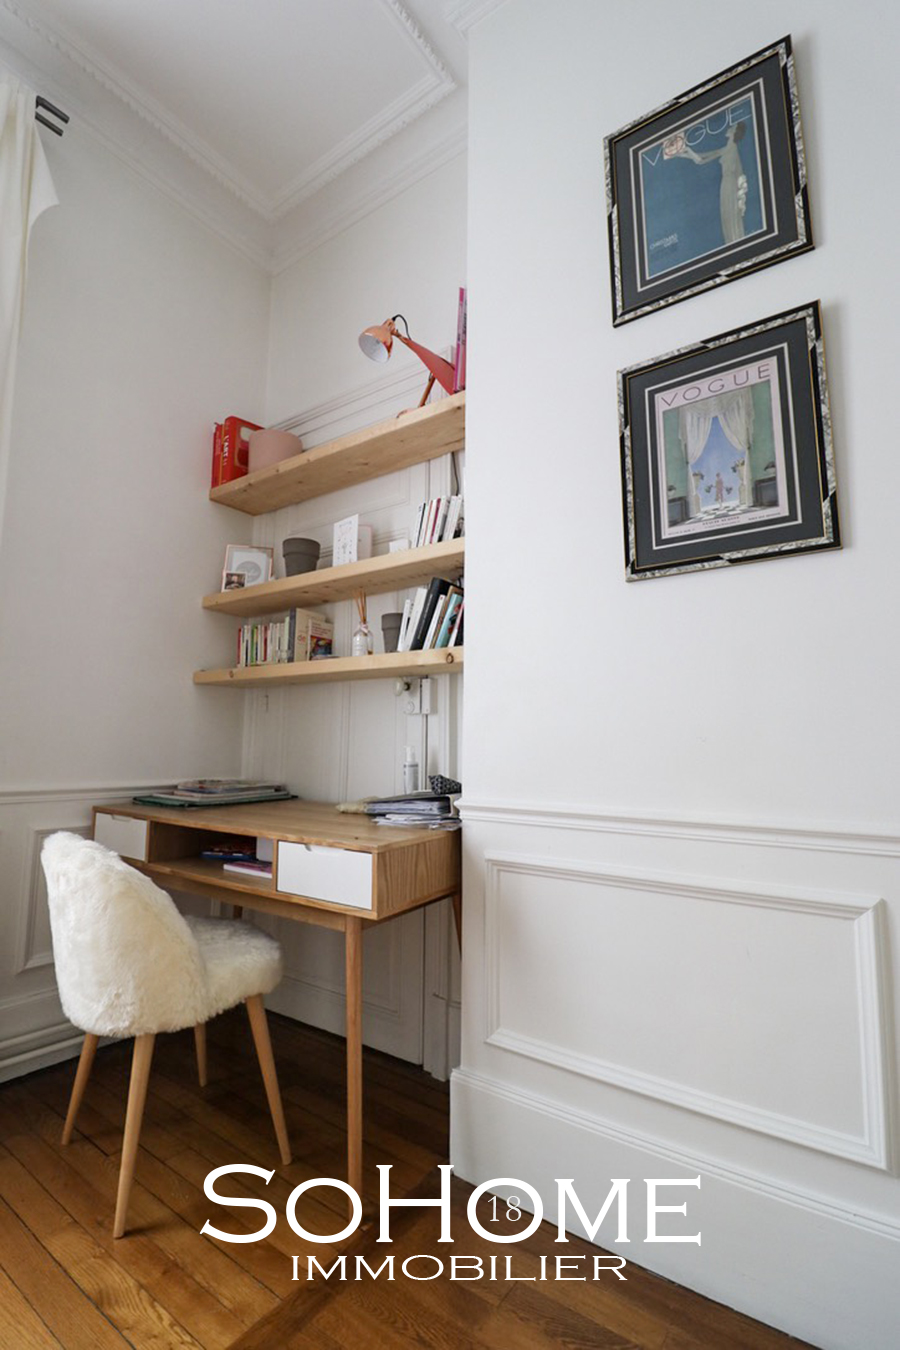 SoHome-Appartement-V-15.jpg